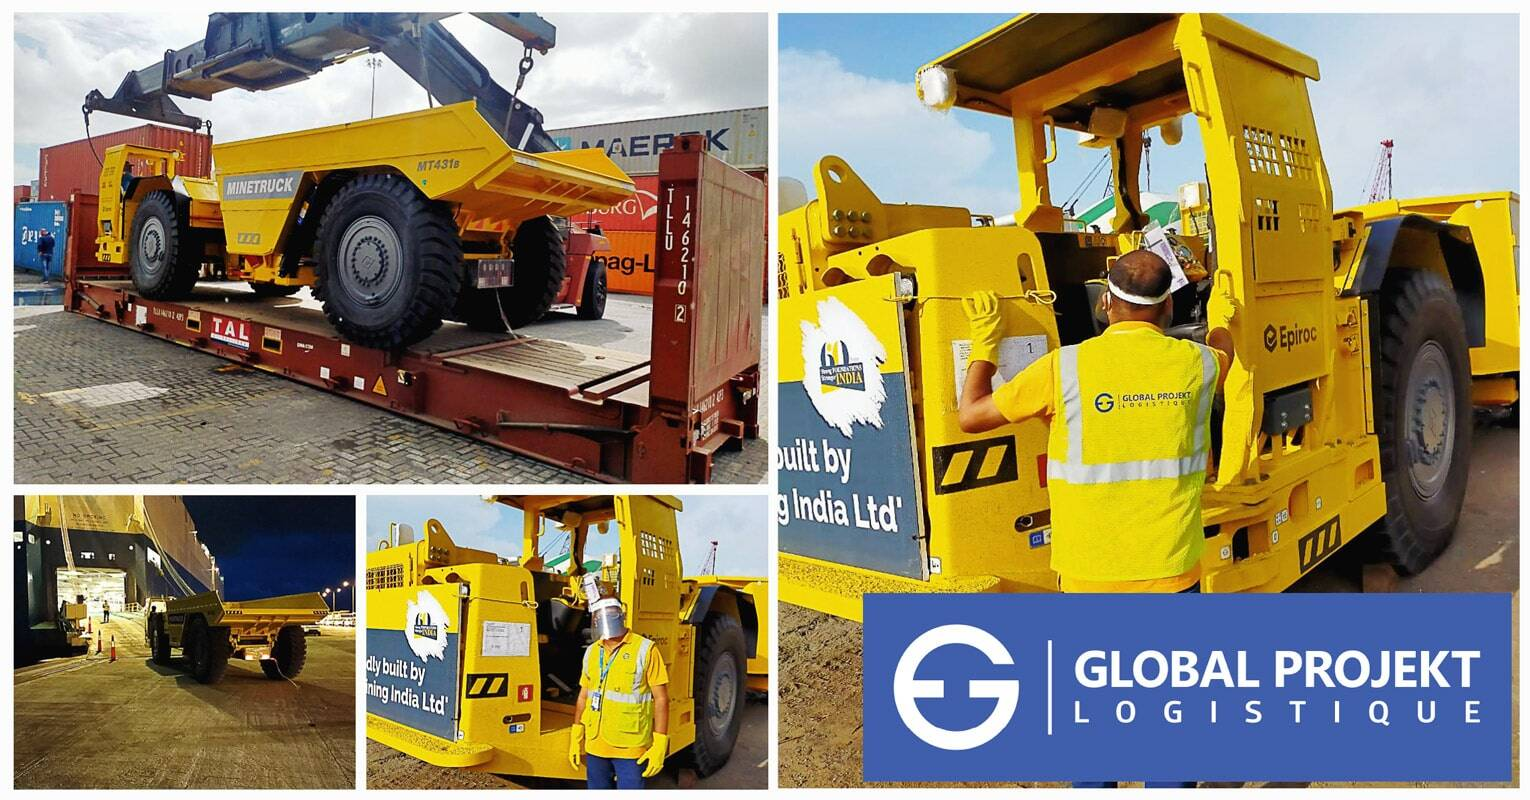 Global Projekt Logistique Delivers Another Time Critical Shipment of Mining Equipment to the DRC